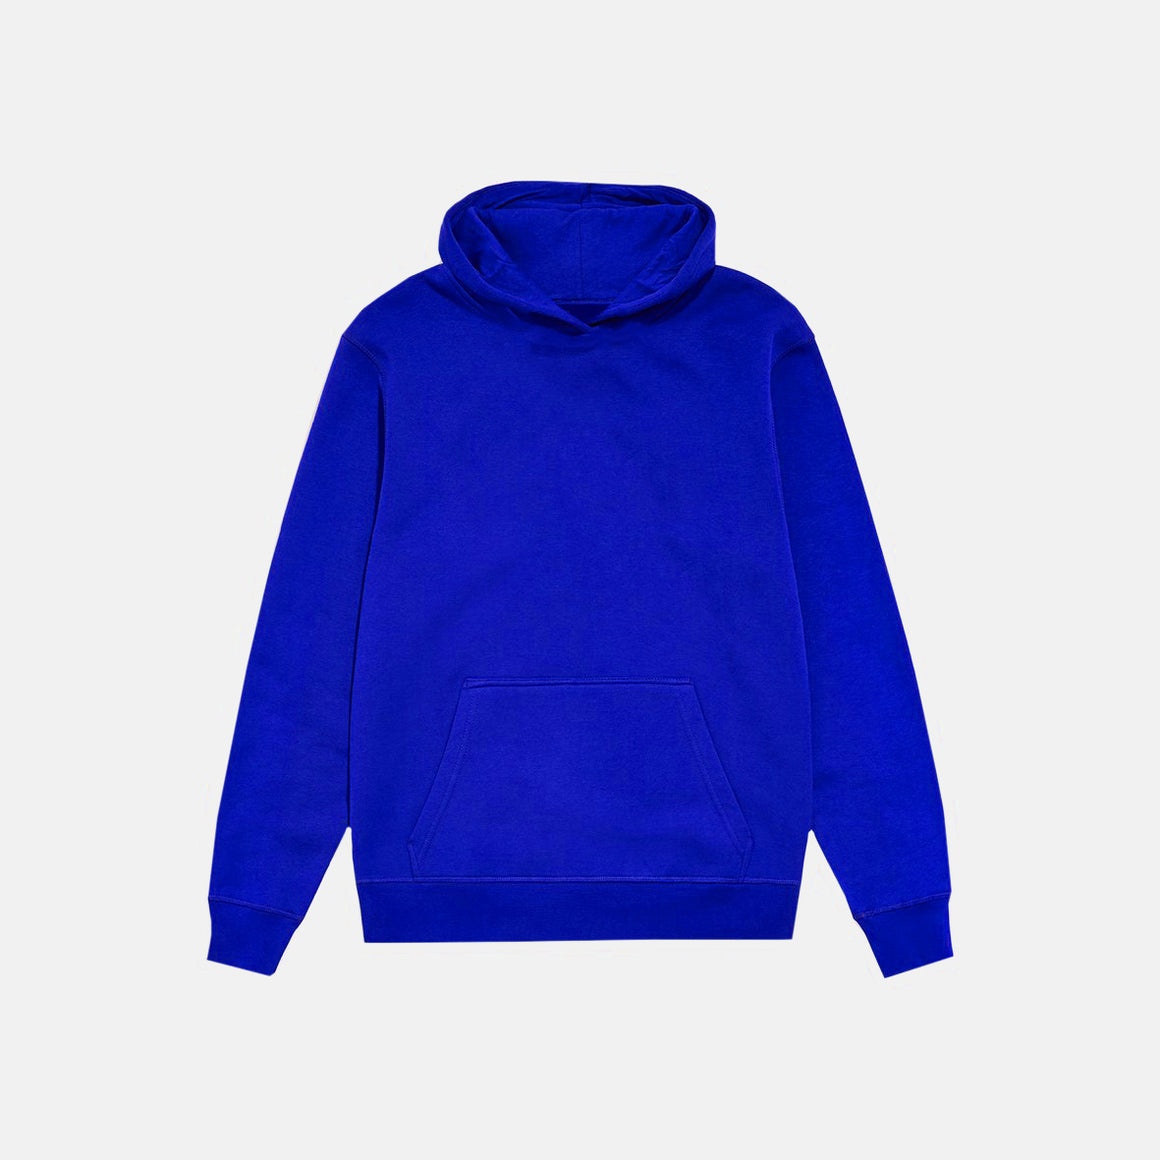 UNBRANDED ESSENTIAL PULLOVER HOODY | ROYAL BLUE